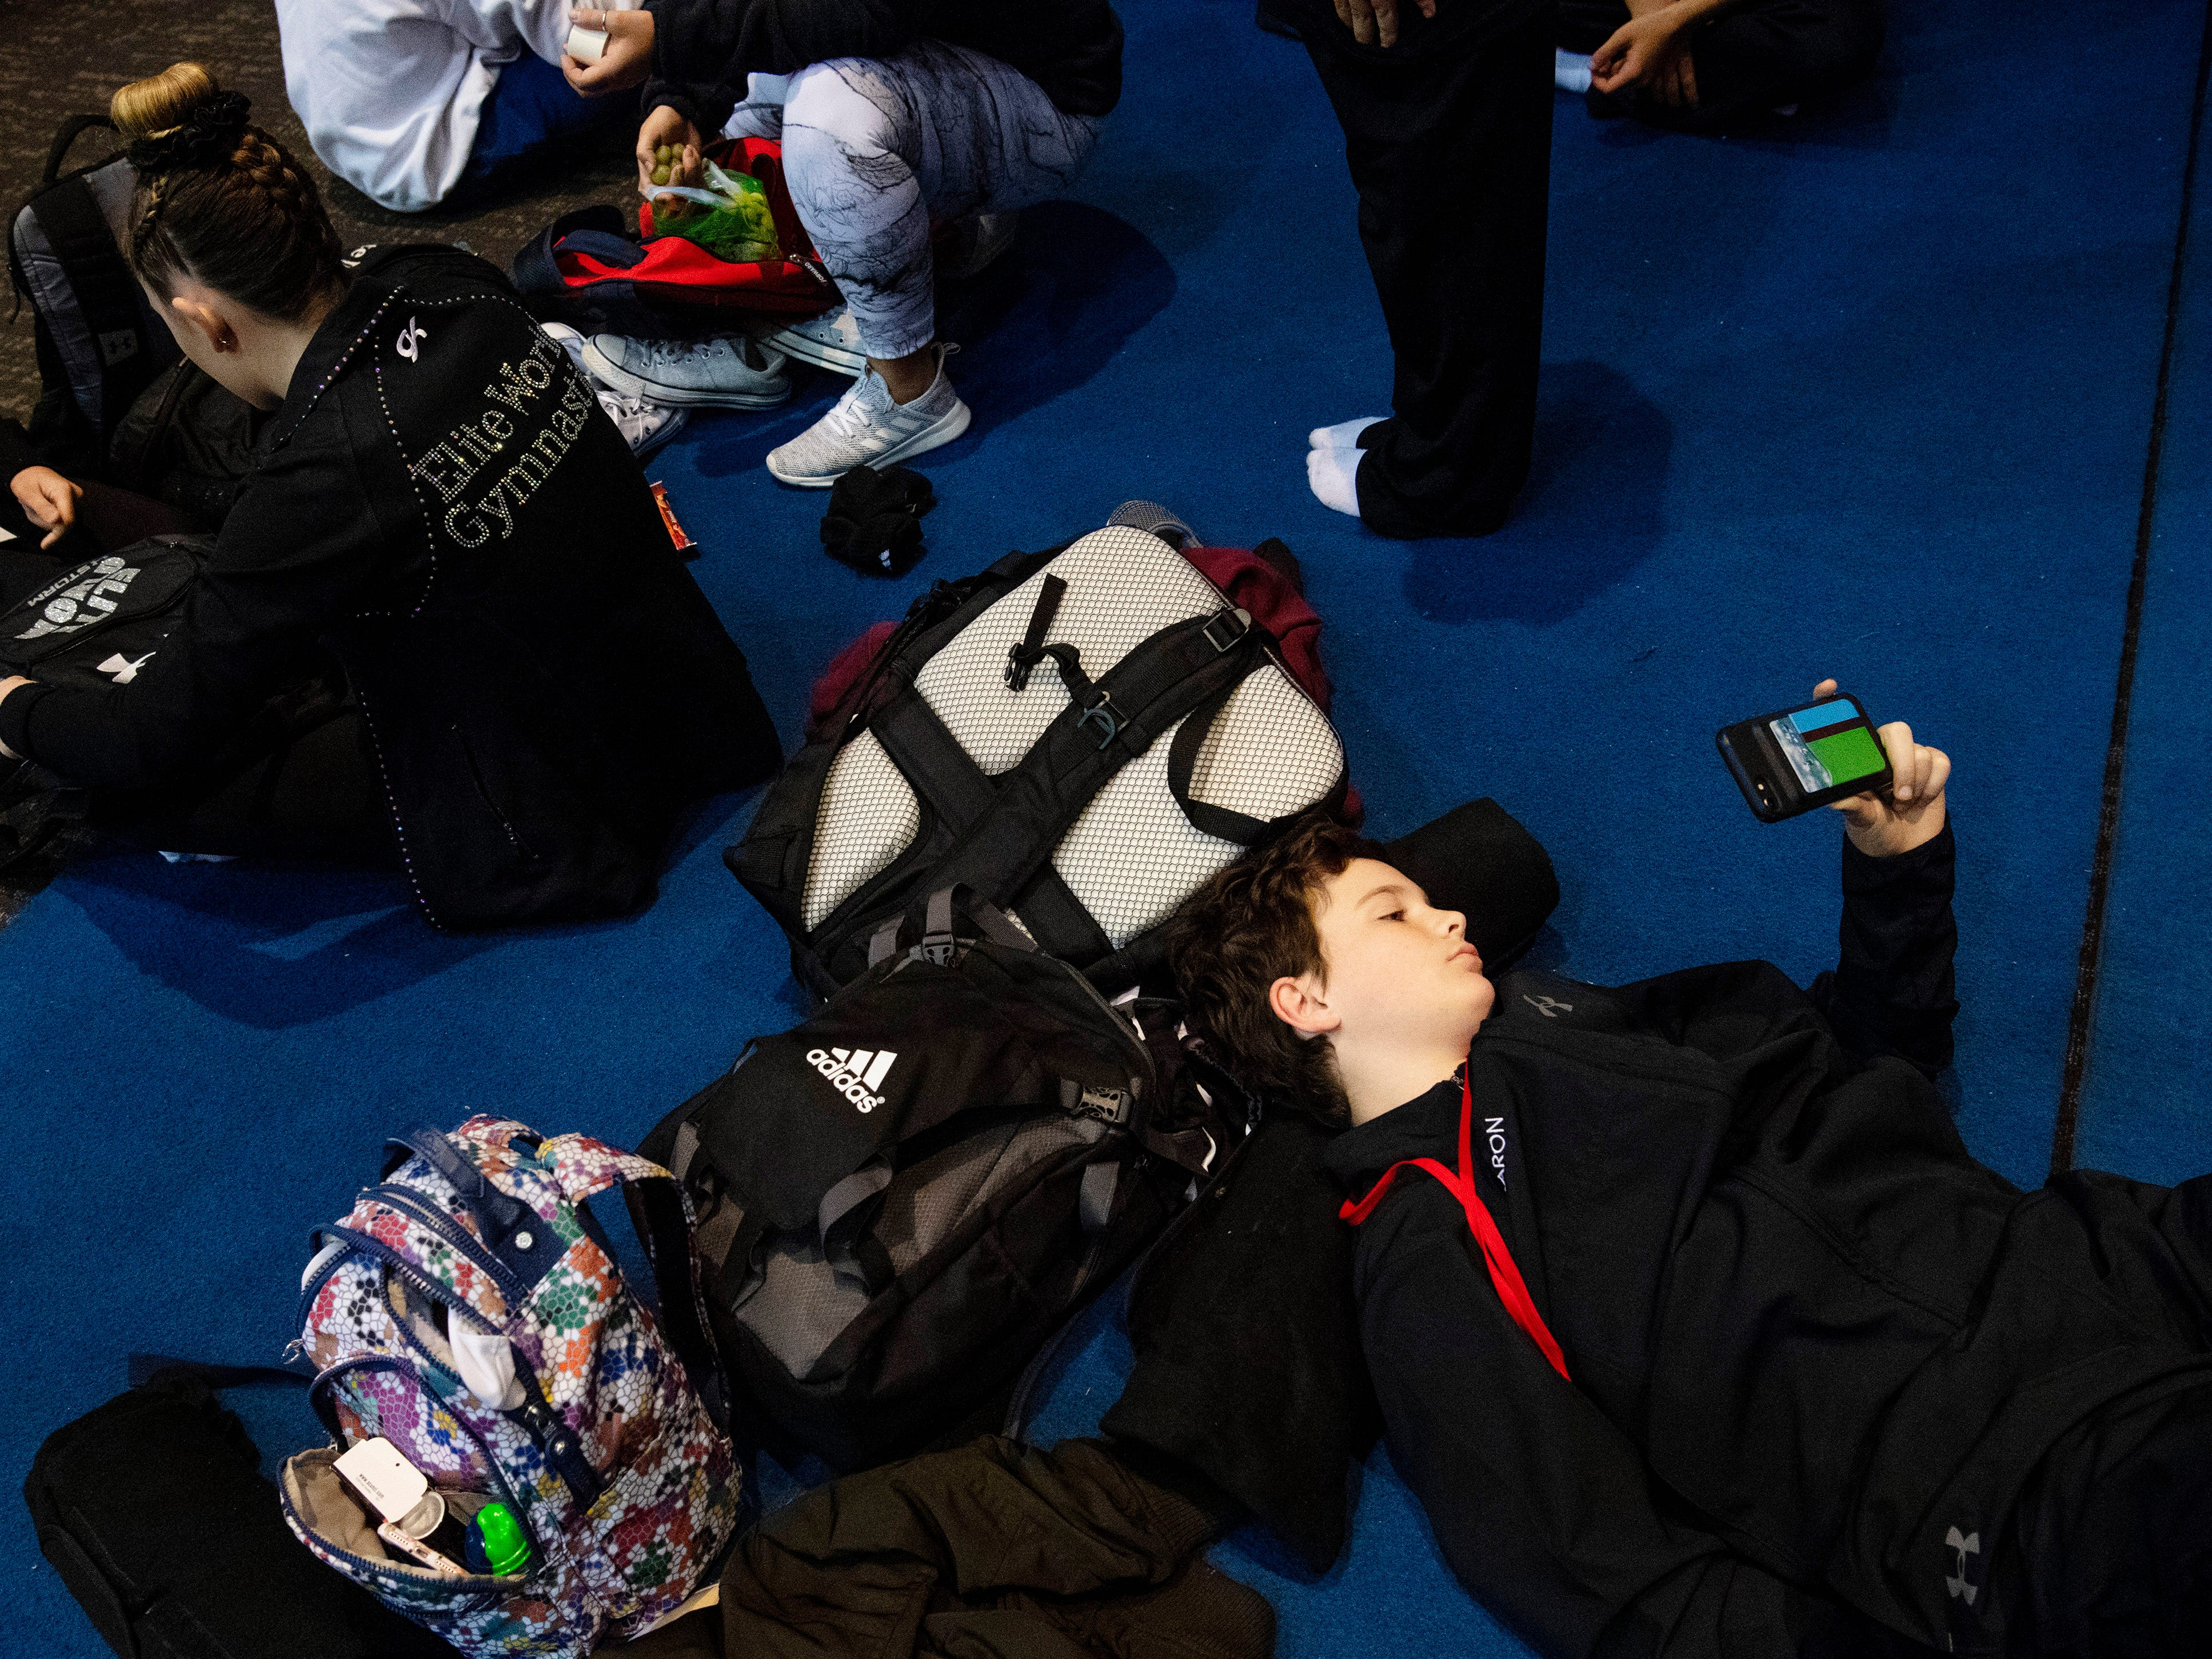 Elite Trampoline Academy team member Aaron Edelman, 12, of Westchester, N.Y., takes in a movie between competitions at the VIP Classic at the Old National Events Plaza Friday afternoon.